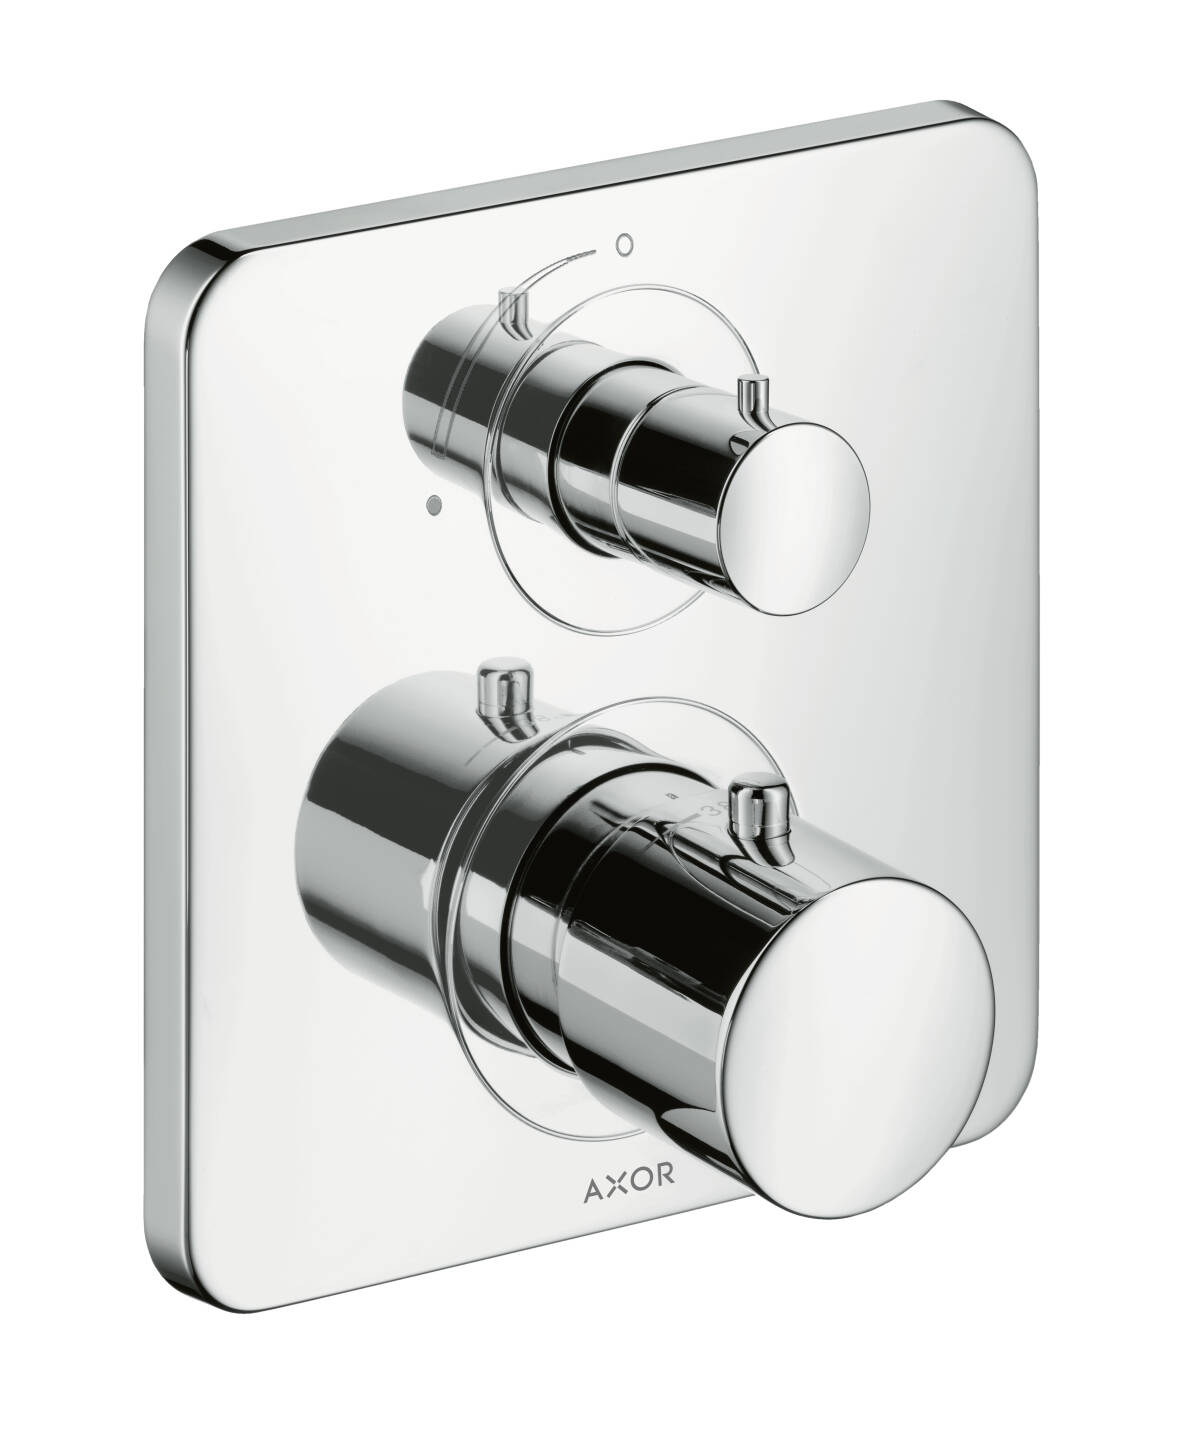 Thermostat for concealed installation with shut-off valve, Chrome, 34705000